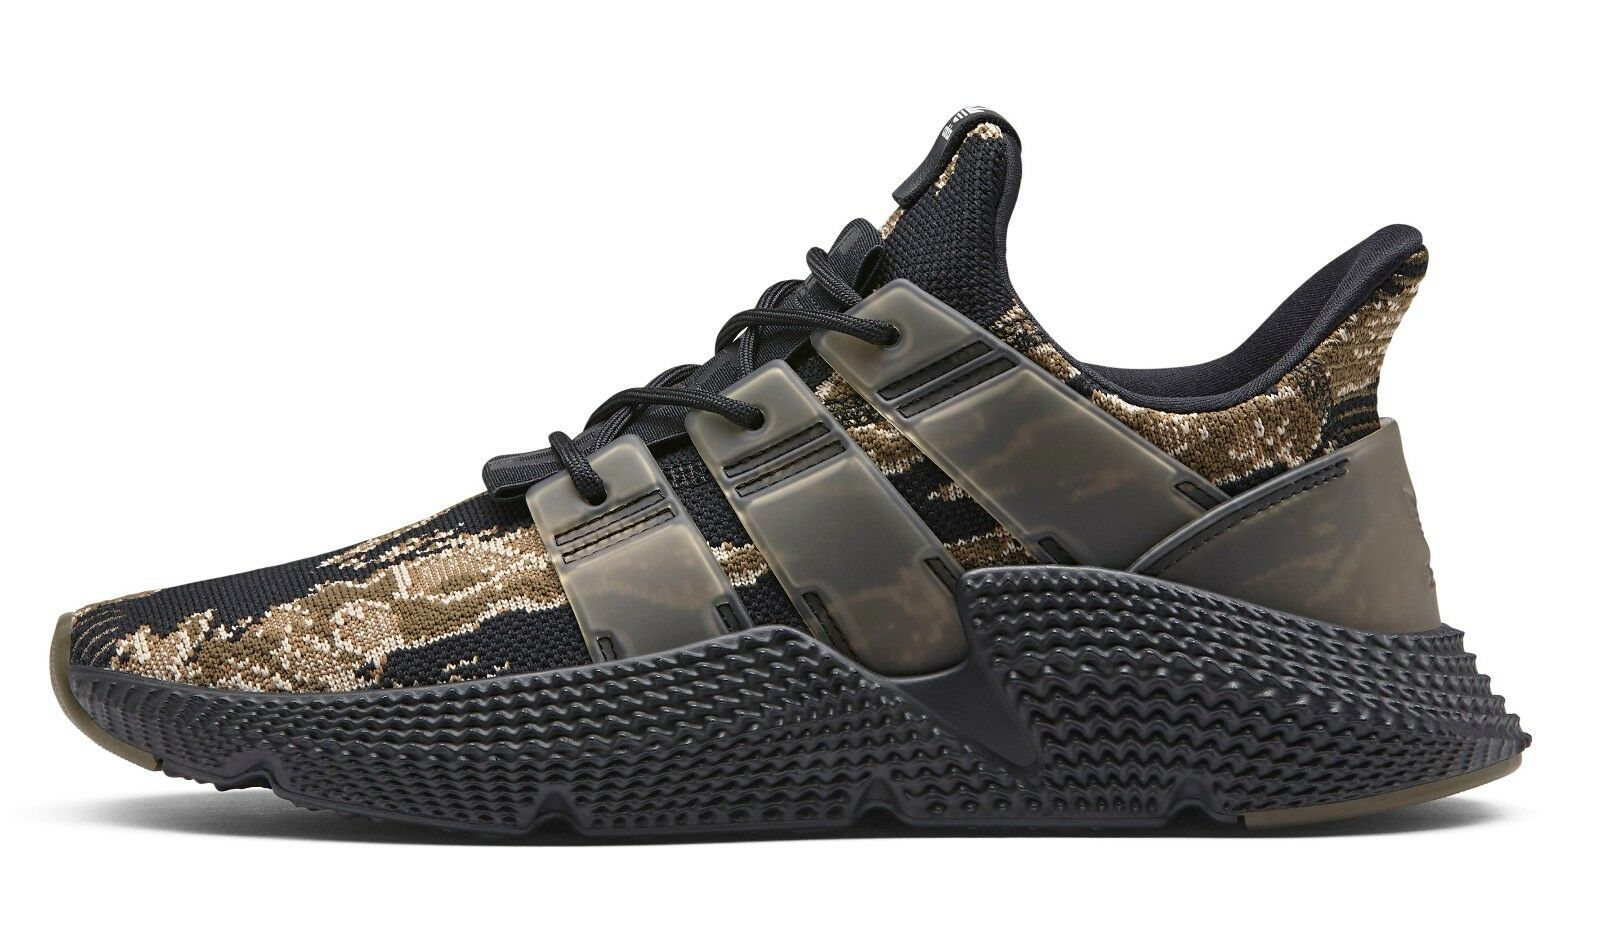 Undefeated x Adidas Prophere Tiger Camo/Black/Olive UNDFTD Mens sizes